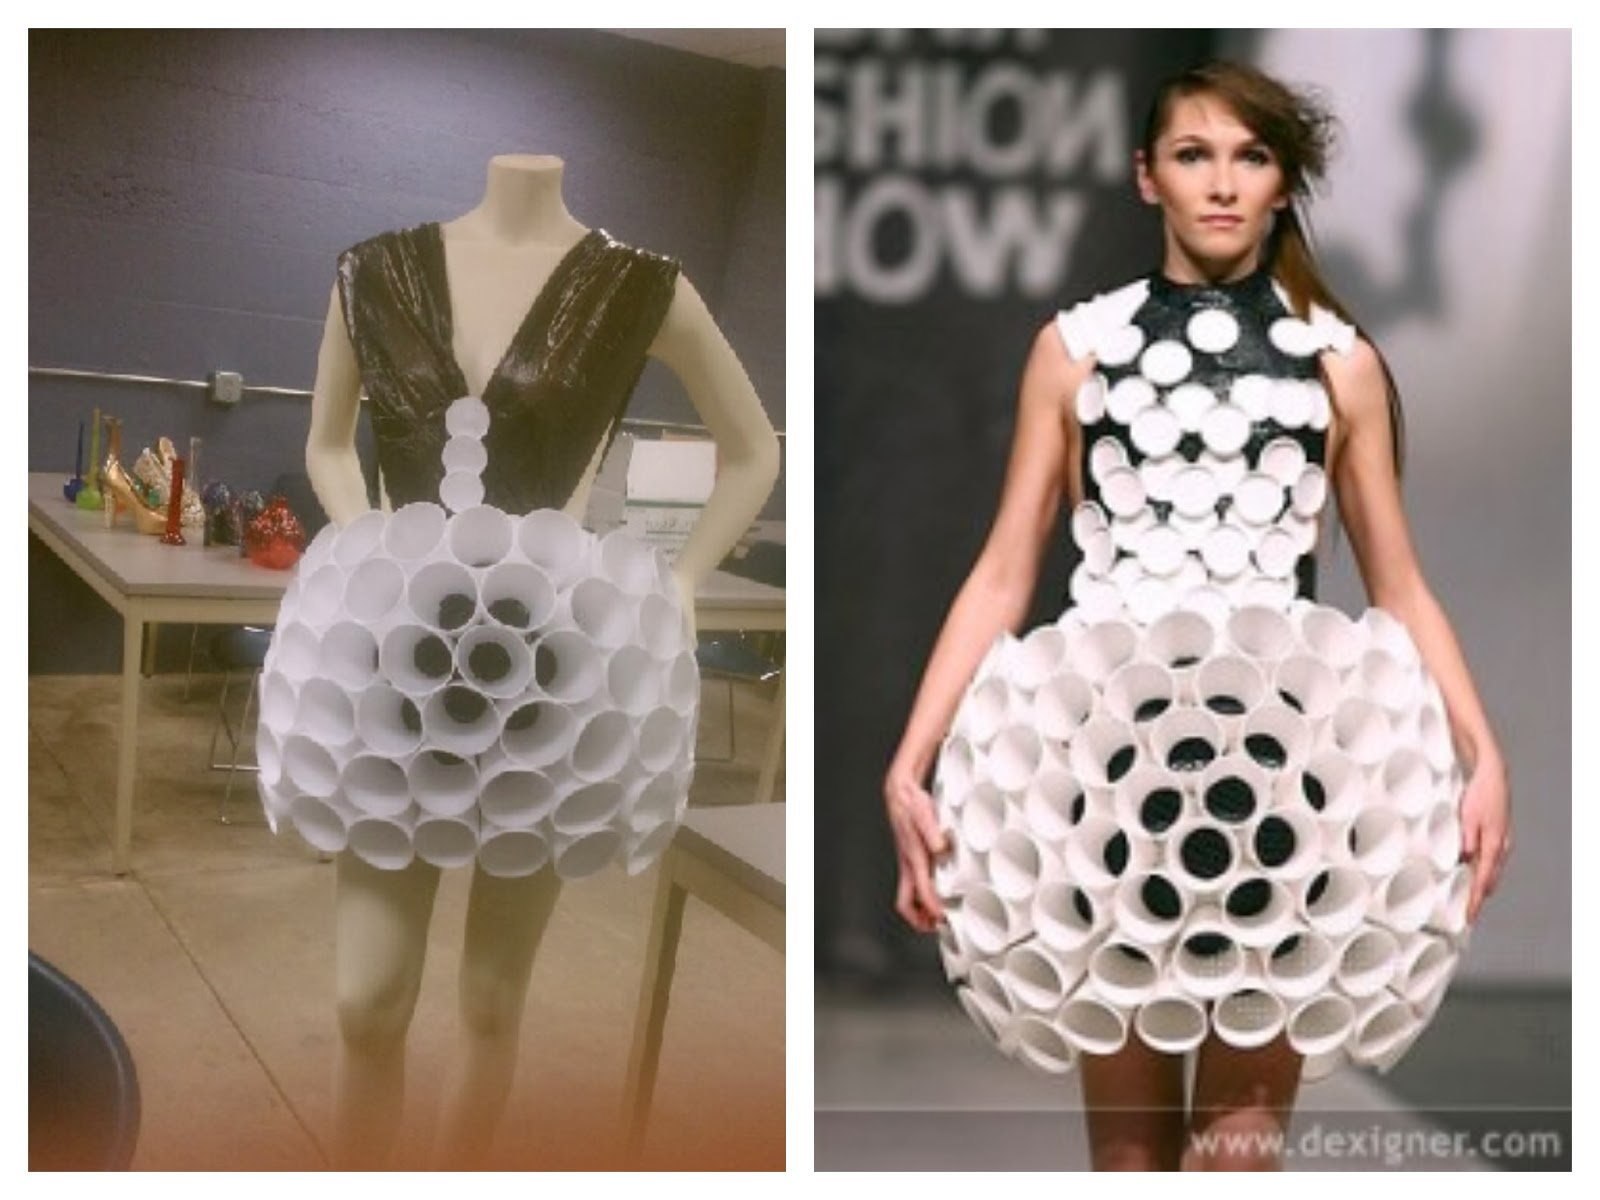 A Is Creating Amazing Dresses Made Out Of The Weirdest